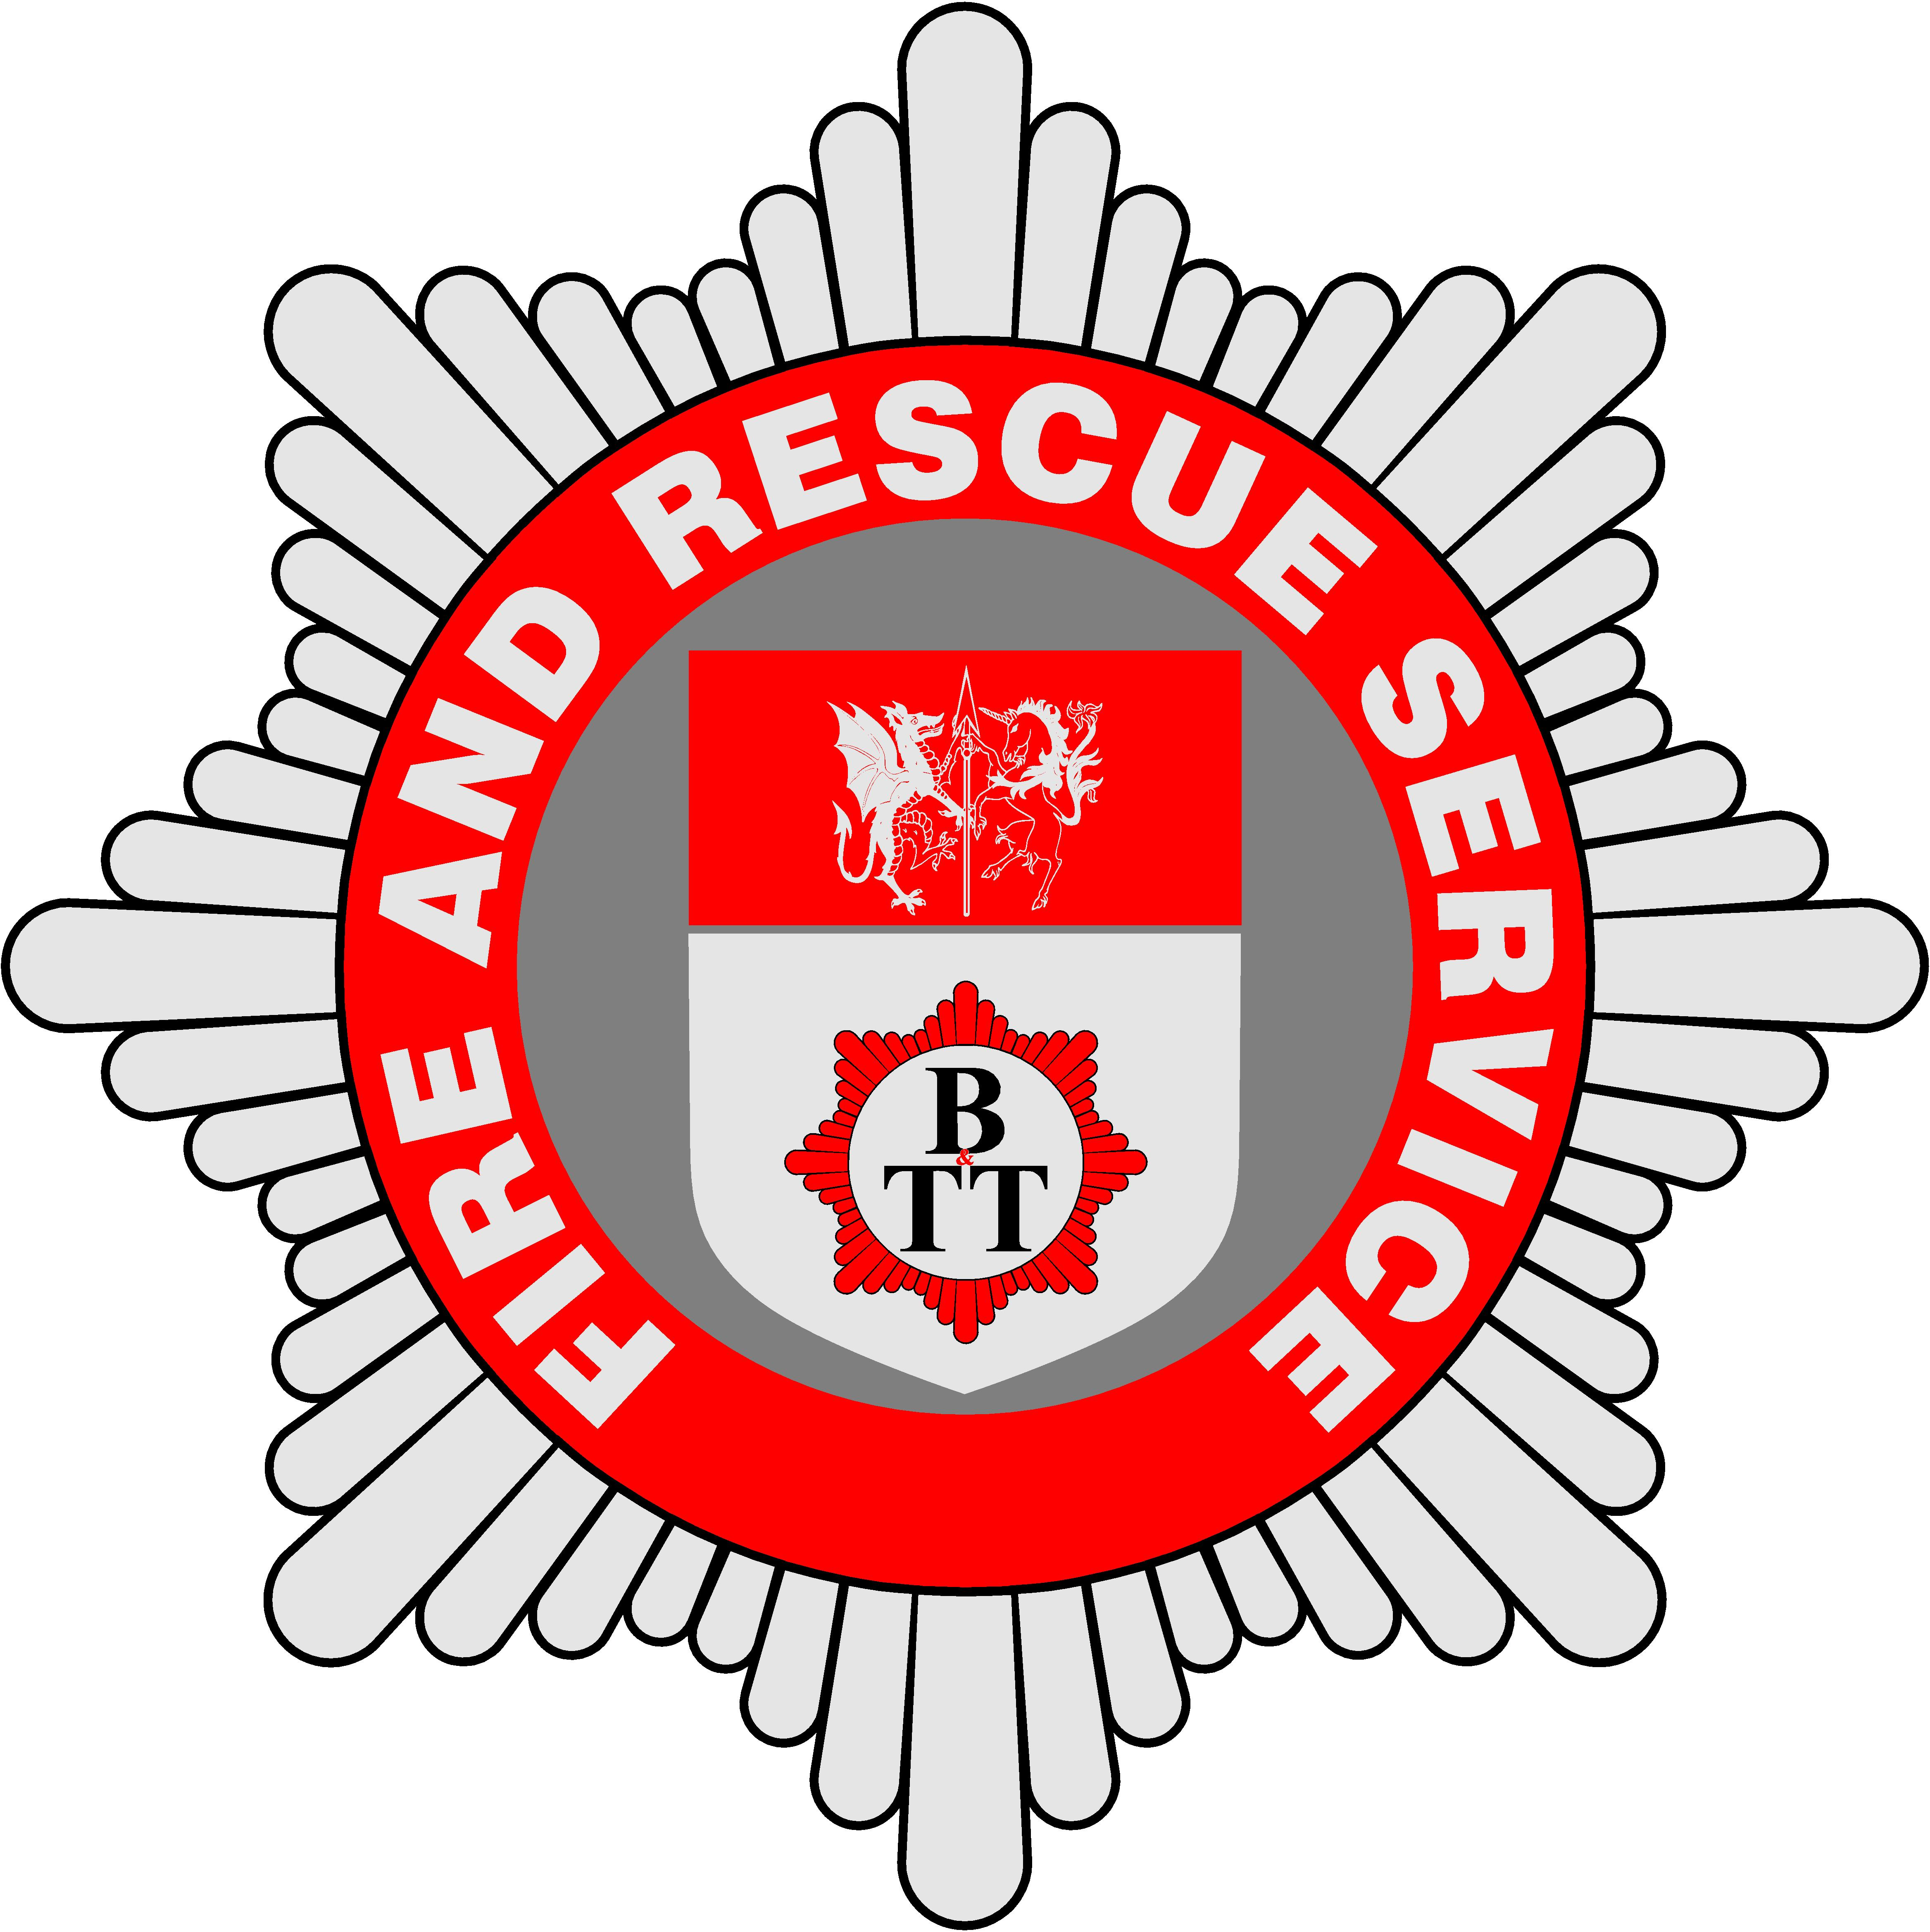 Bells and Two Tones Fire and Rescue Ltd | Health & Safety